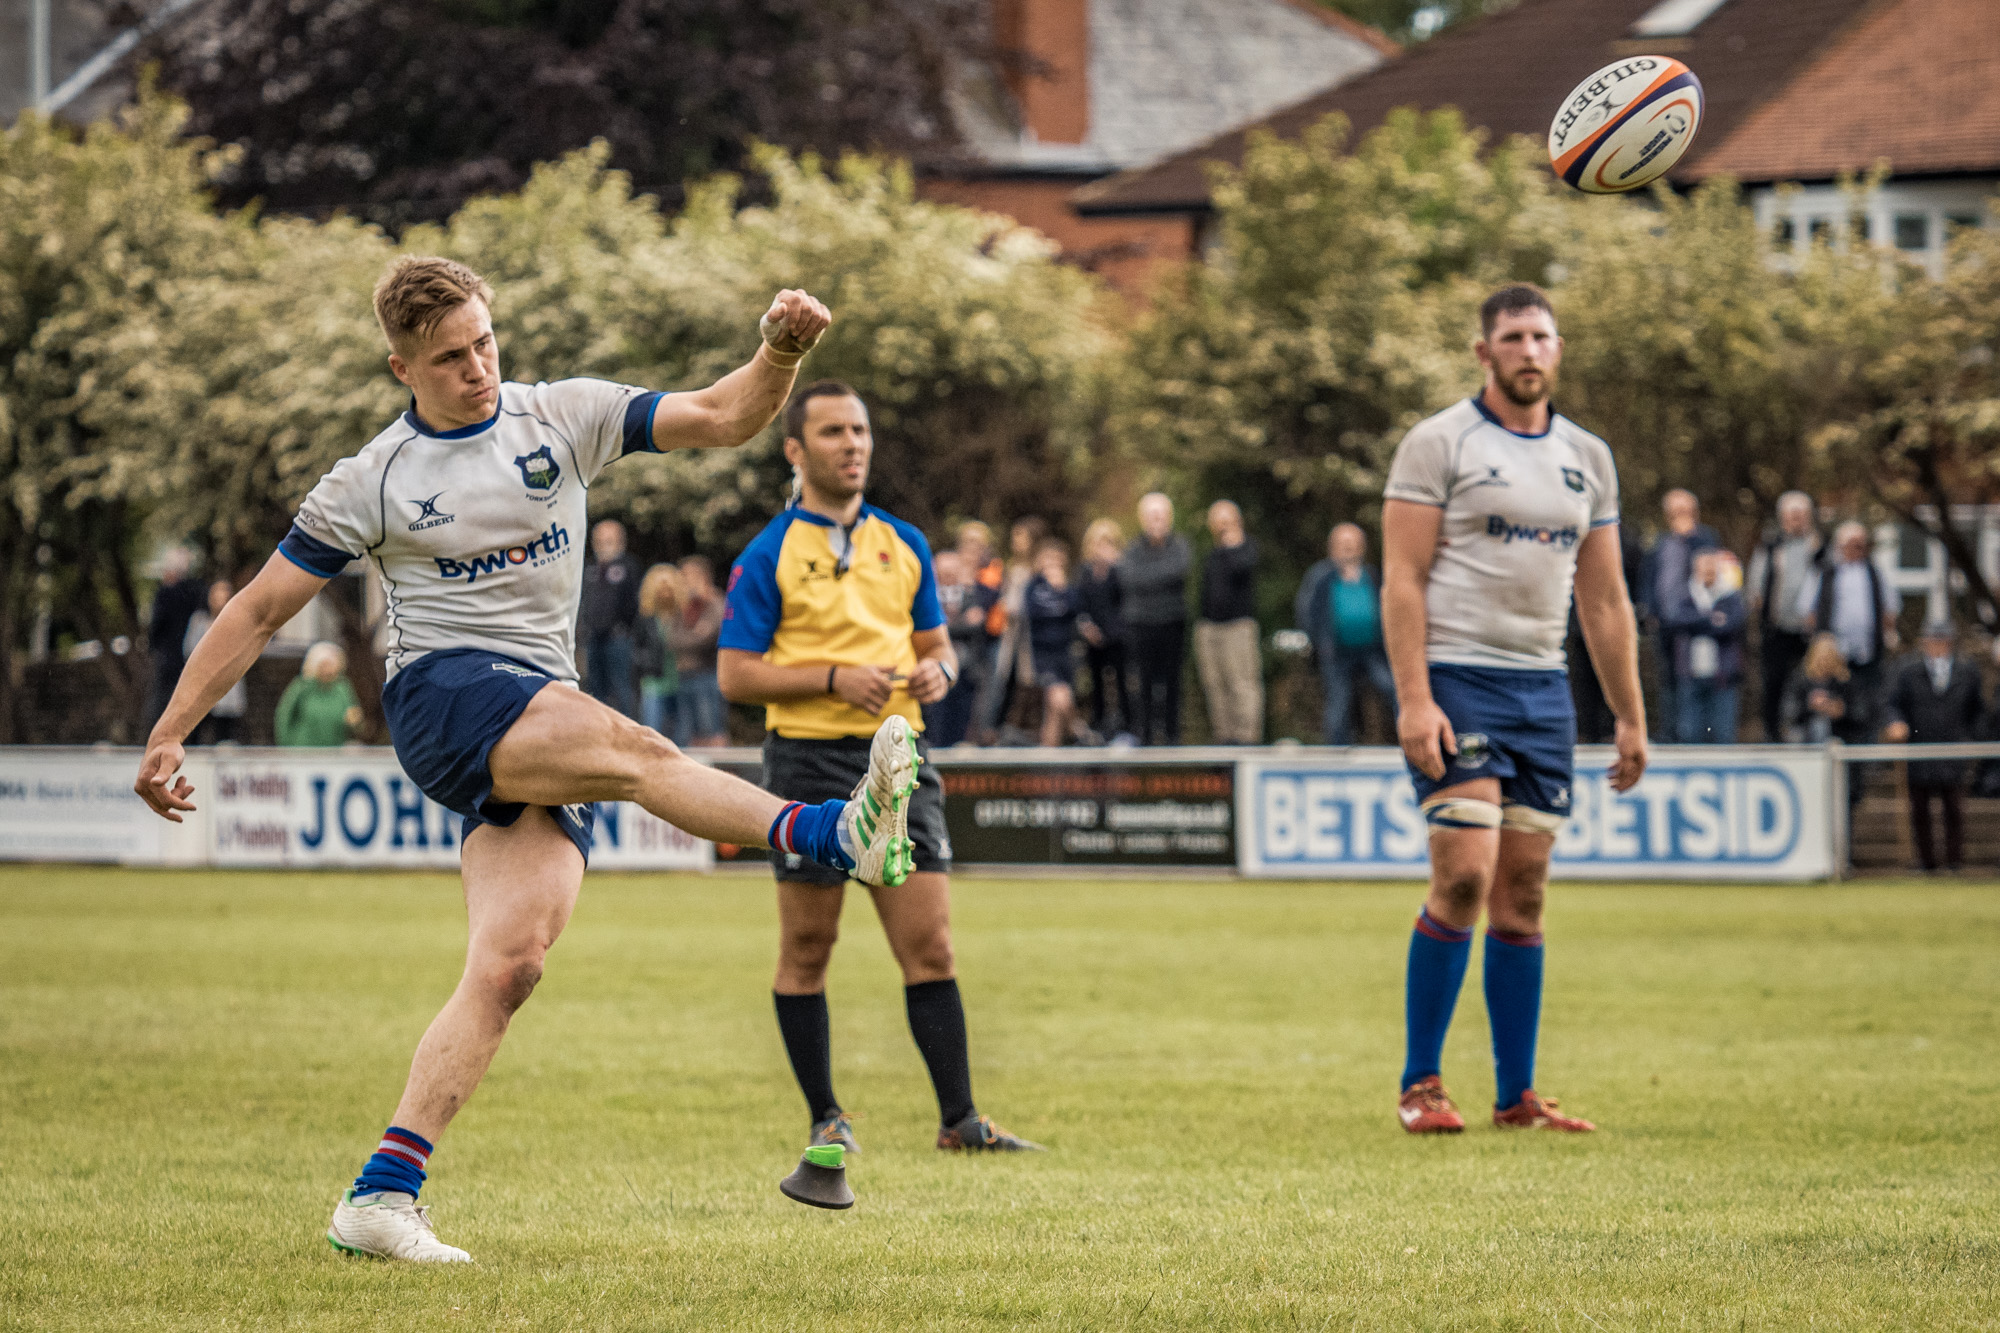 On good kicking form throughout the afternoon, Lewis Minikin had the last word with this one